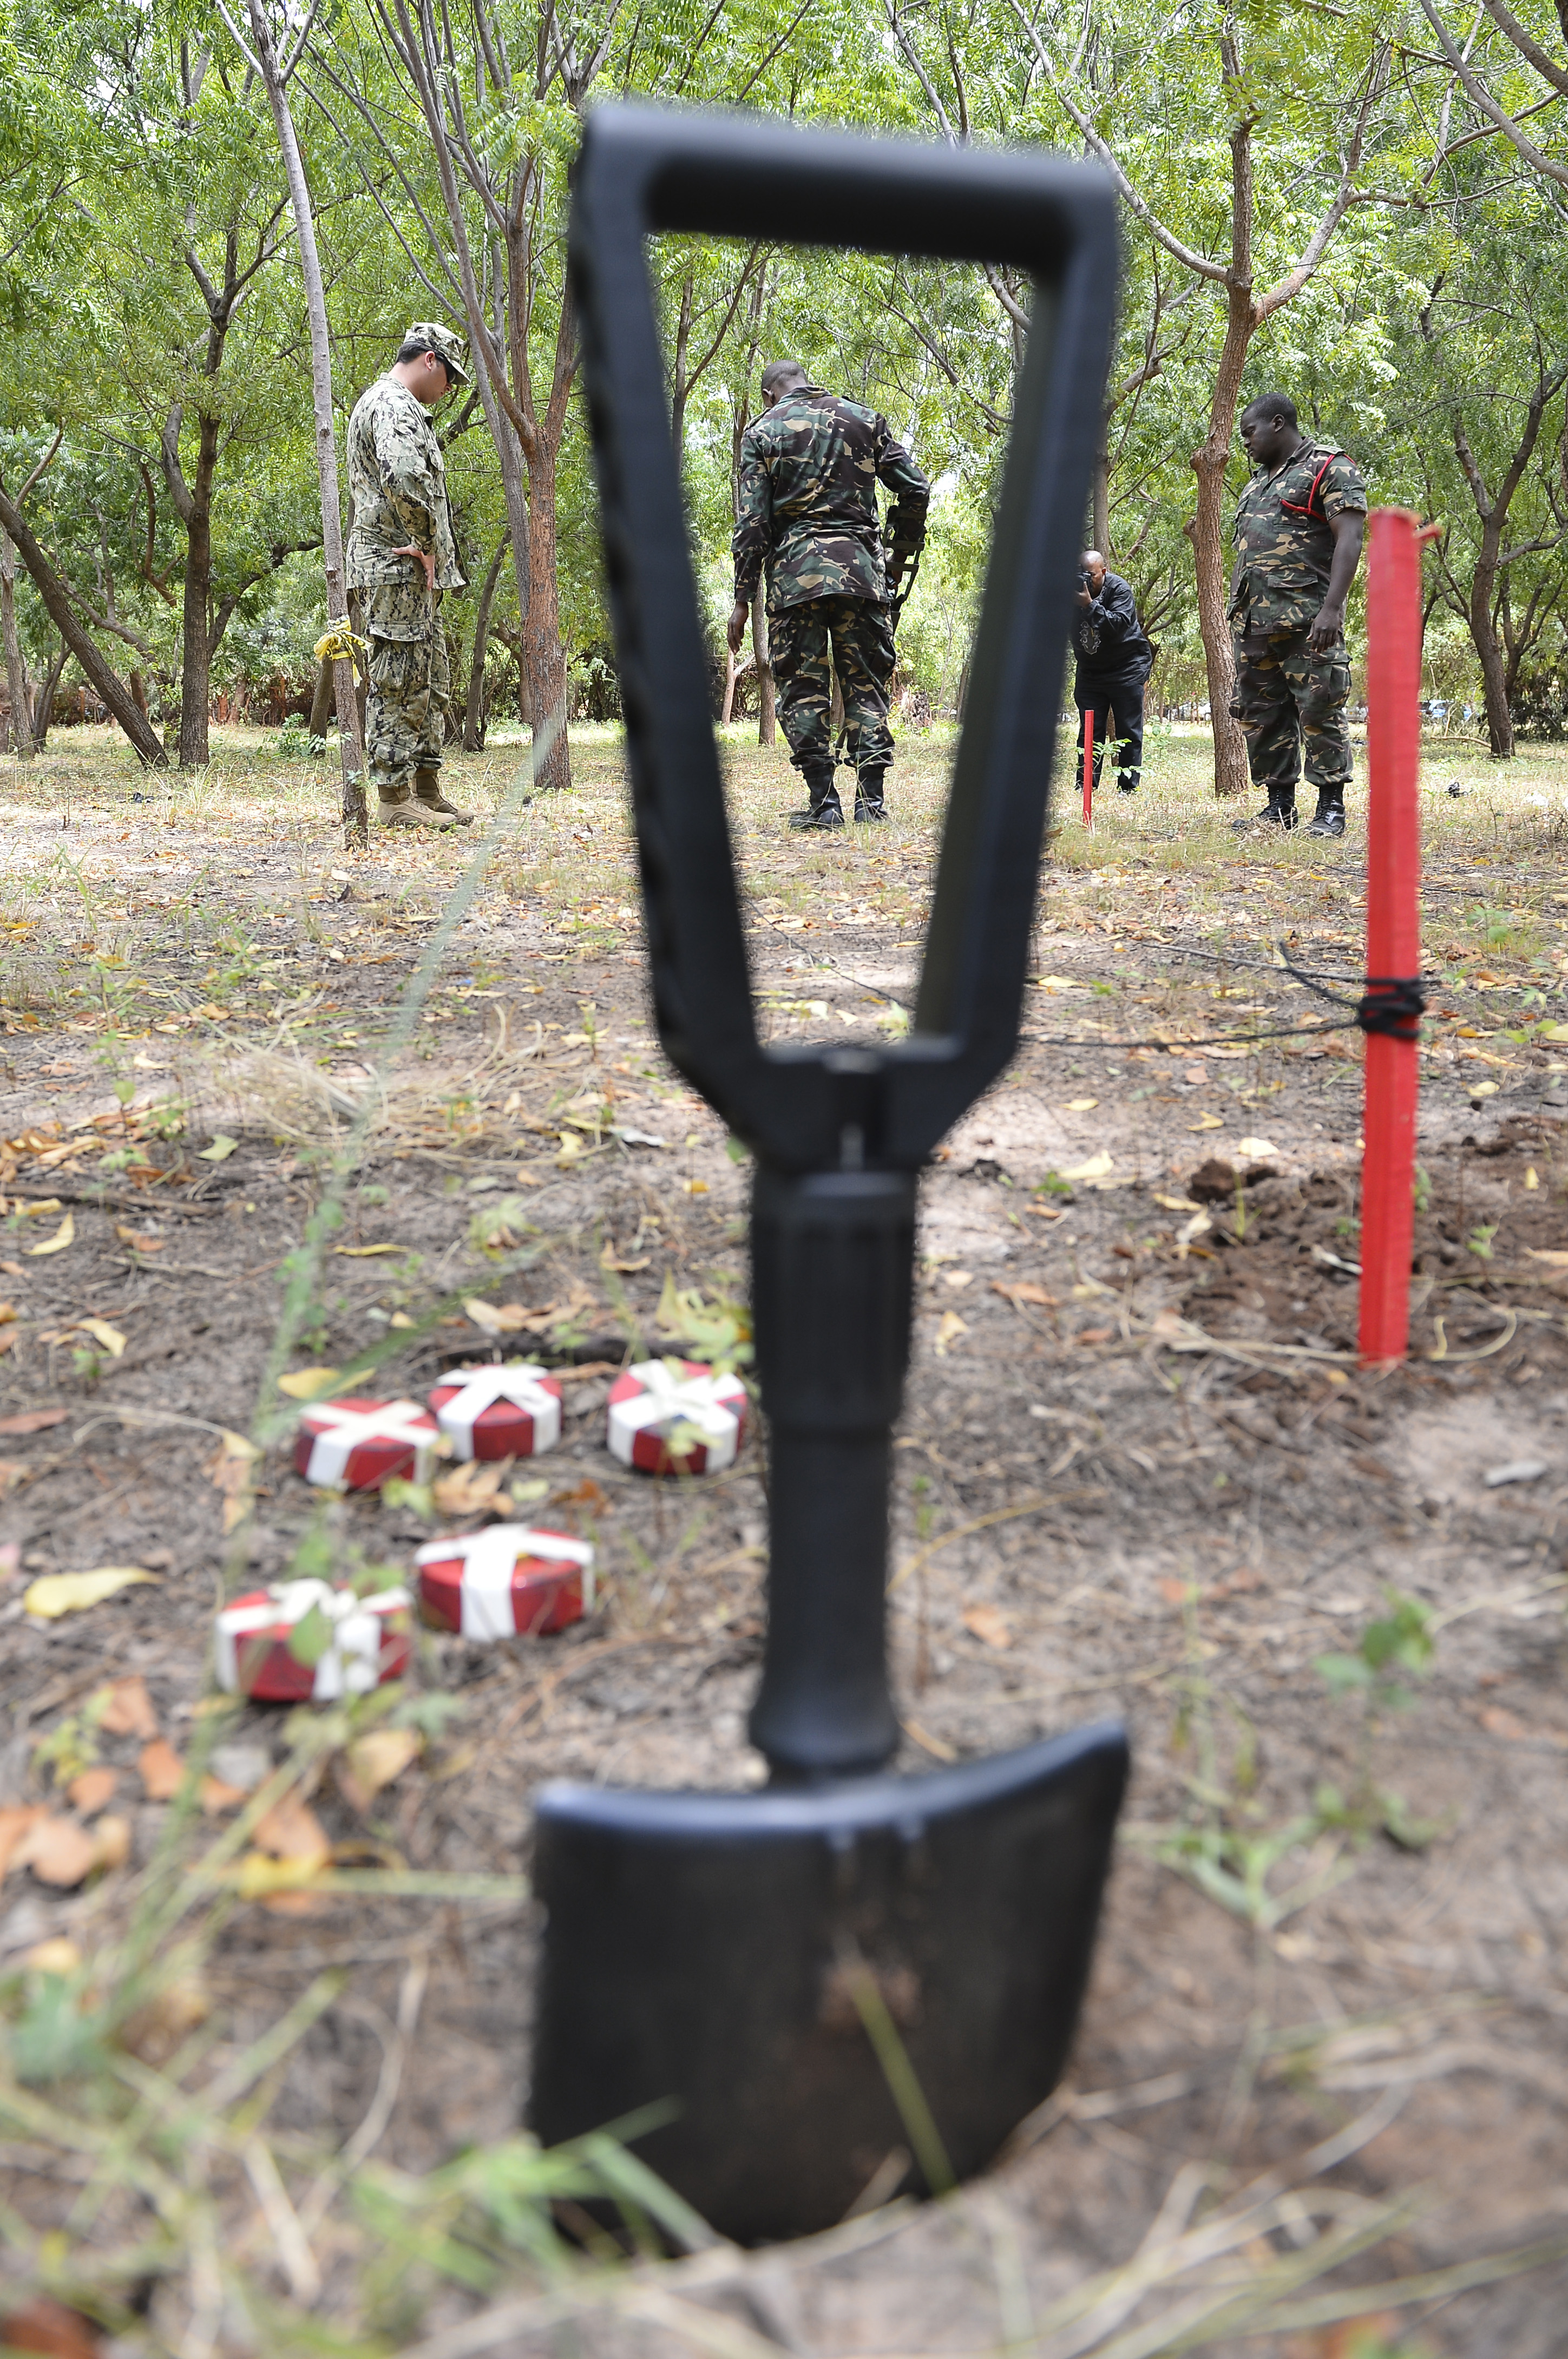 An Explosive Ordnance Disposal Technician assigned to Combined to Joint Task Force- Horn of Africa, left, coaches Tanzania People's Defense Force ammunition technicians and officers through metal detector sweeps at the Peace Keeping Training Center in Dar es Salaam, Tanzania Aug. 23, 2015. EOD technicians shared best practices during a Humanitarian Mine Action Course, focusing on ordnance identification; safety, and tactical combat casualty care procedures. (U.S. Air Force photo by Senior Airman Nesha Humes)